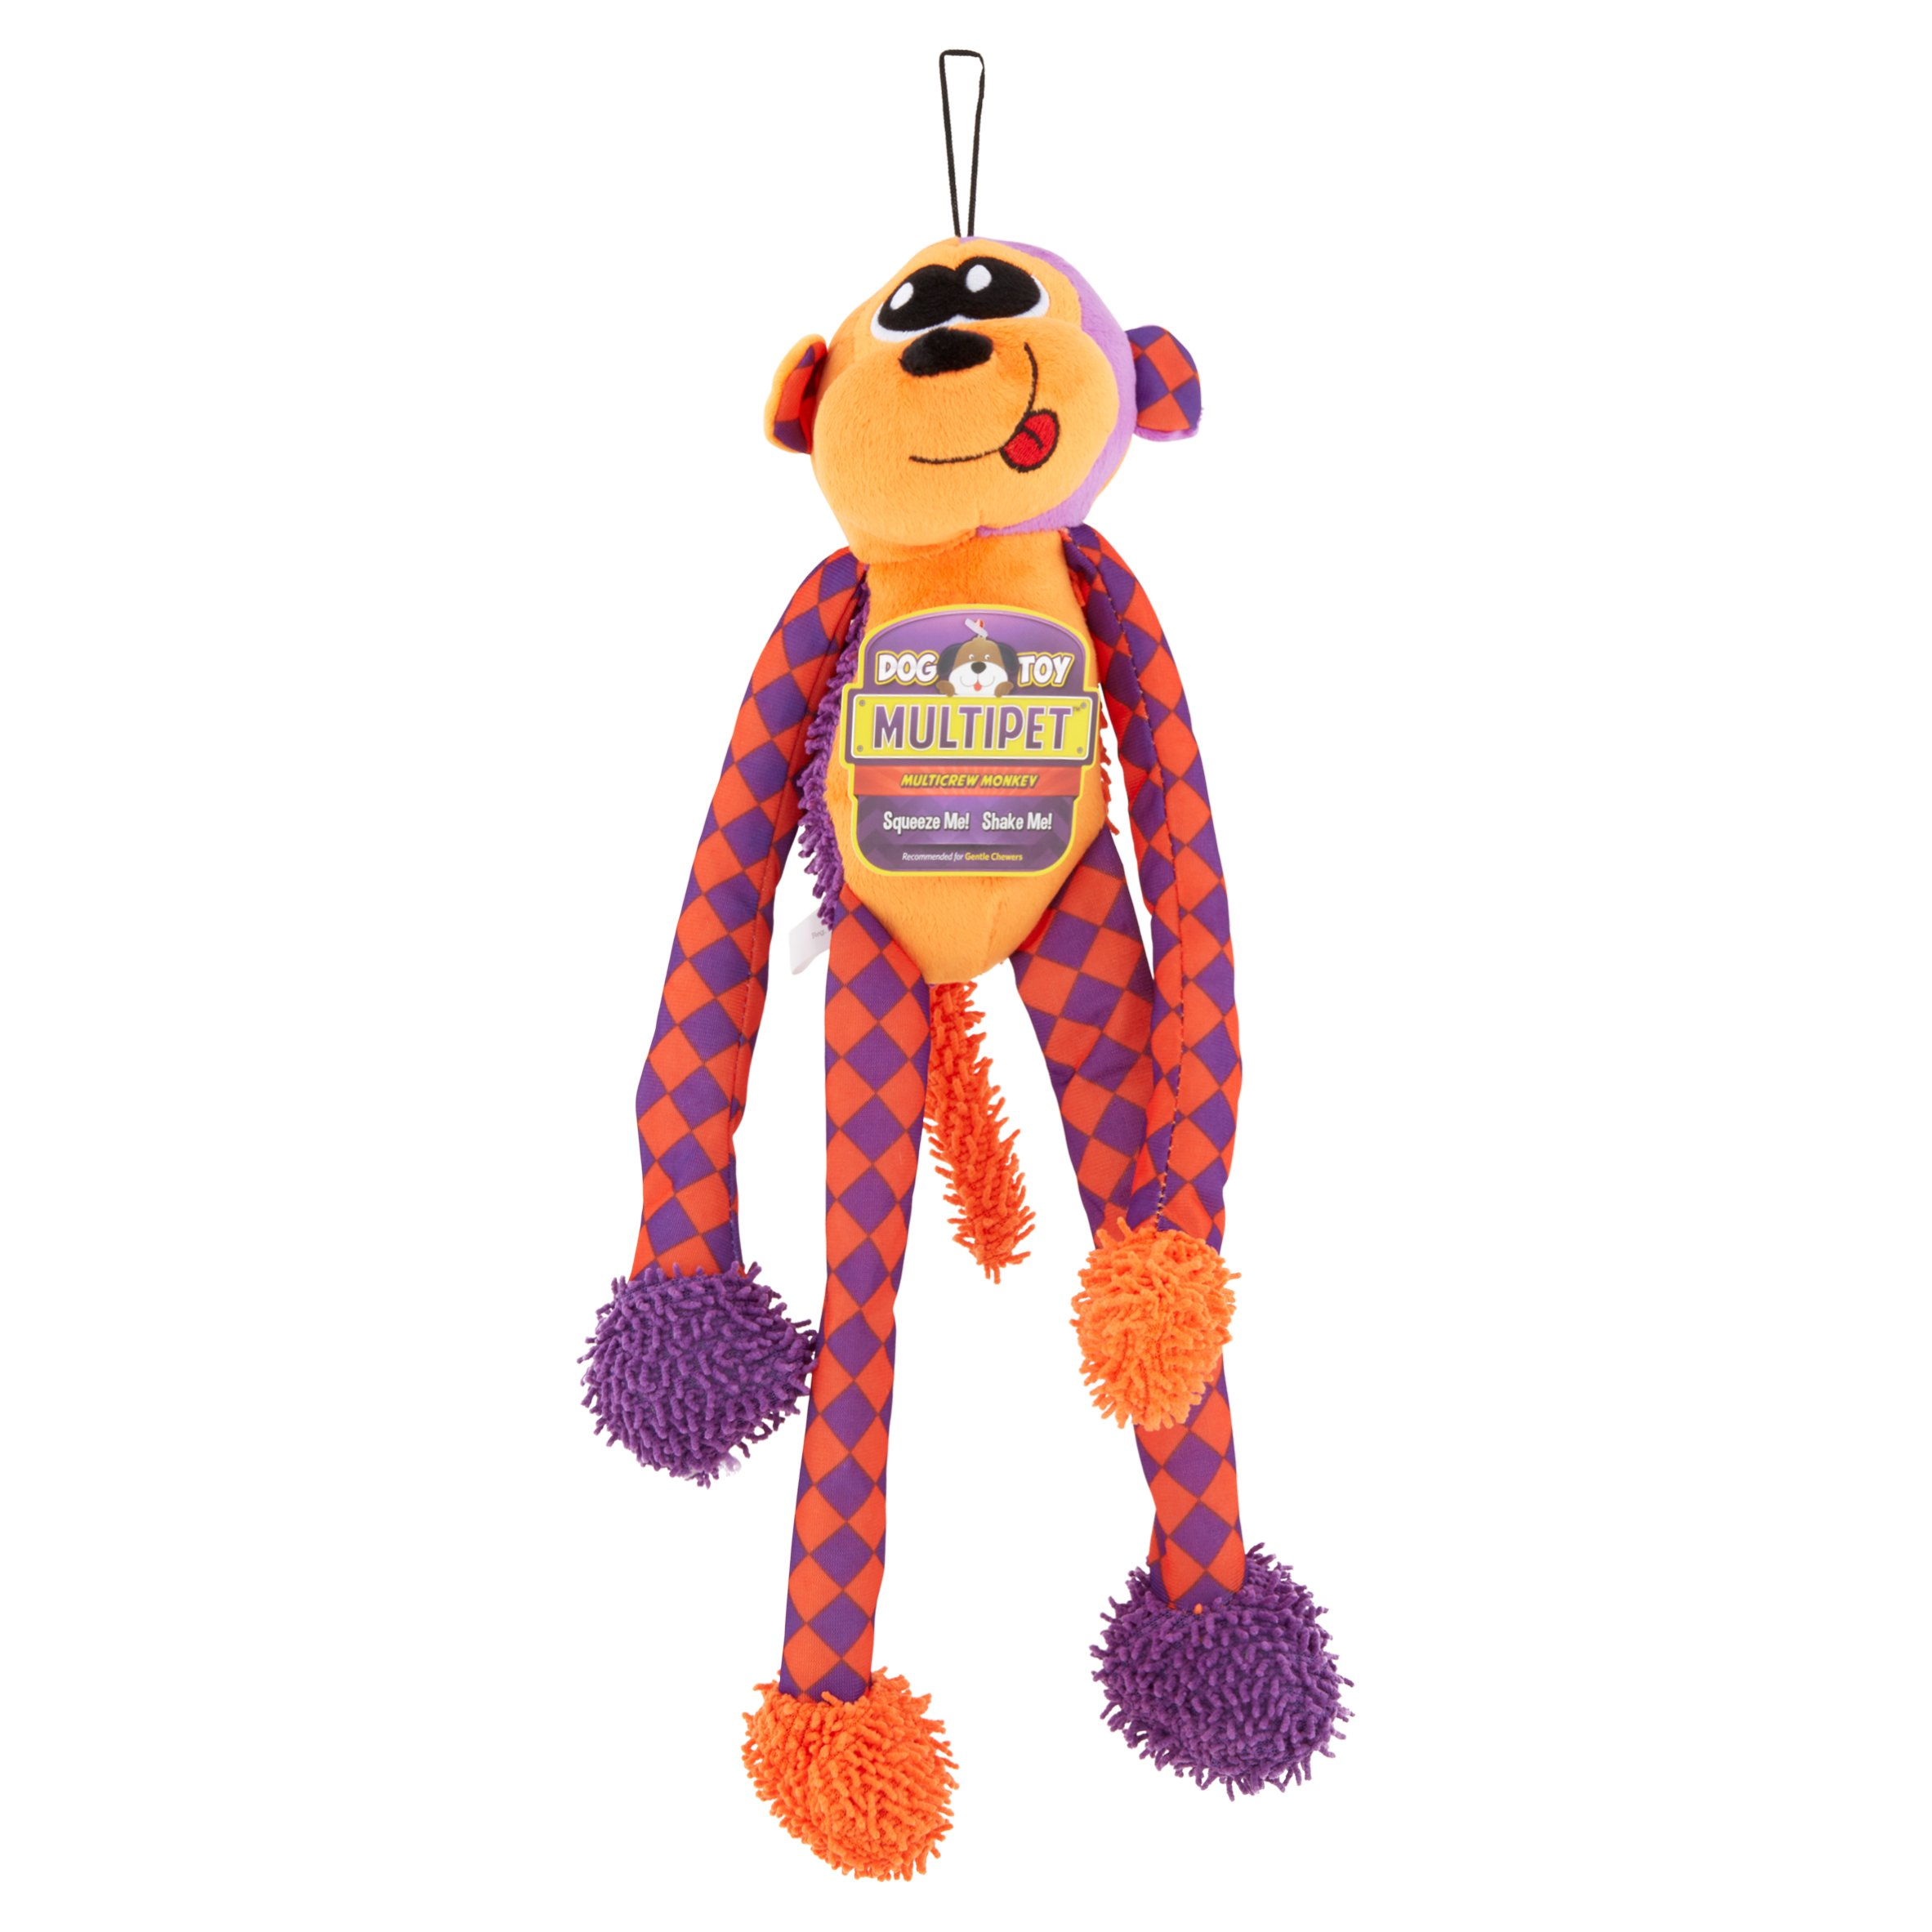 Multipet Dog Toy Multicrew Monkey Color May Vary